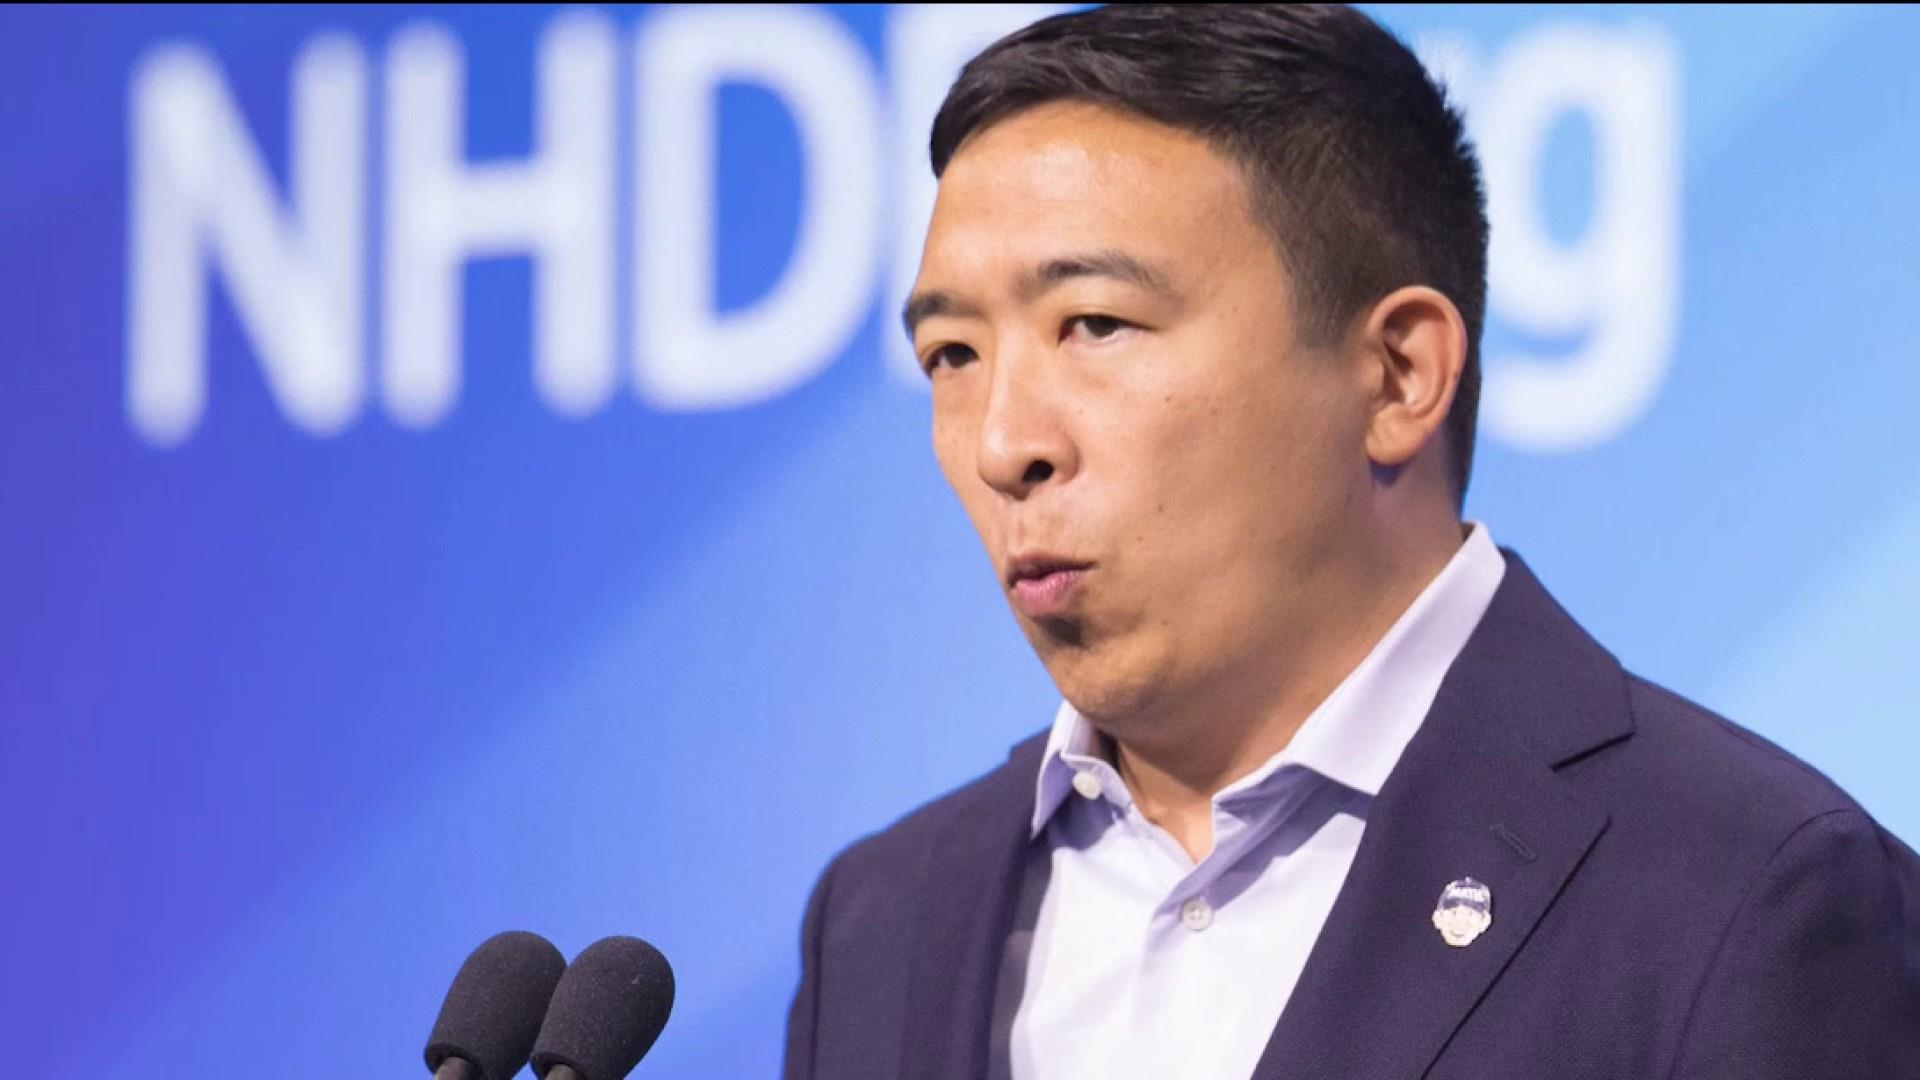 Andrew Yang explains why digital data is personal property